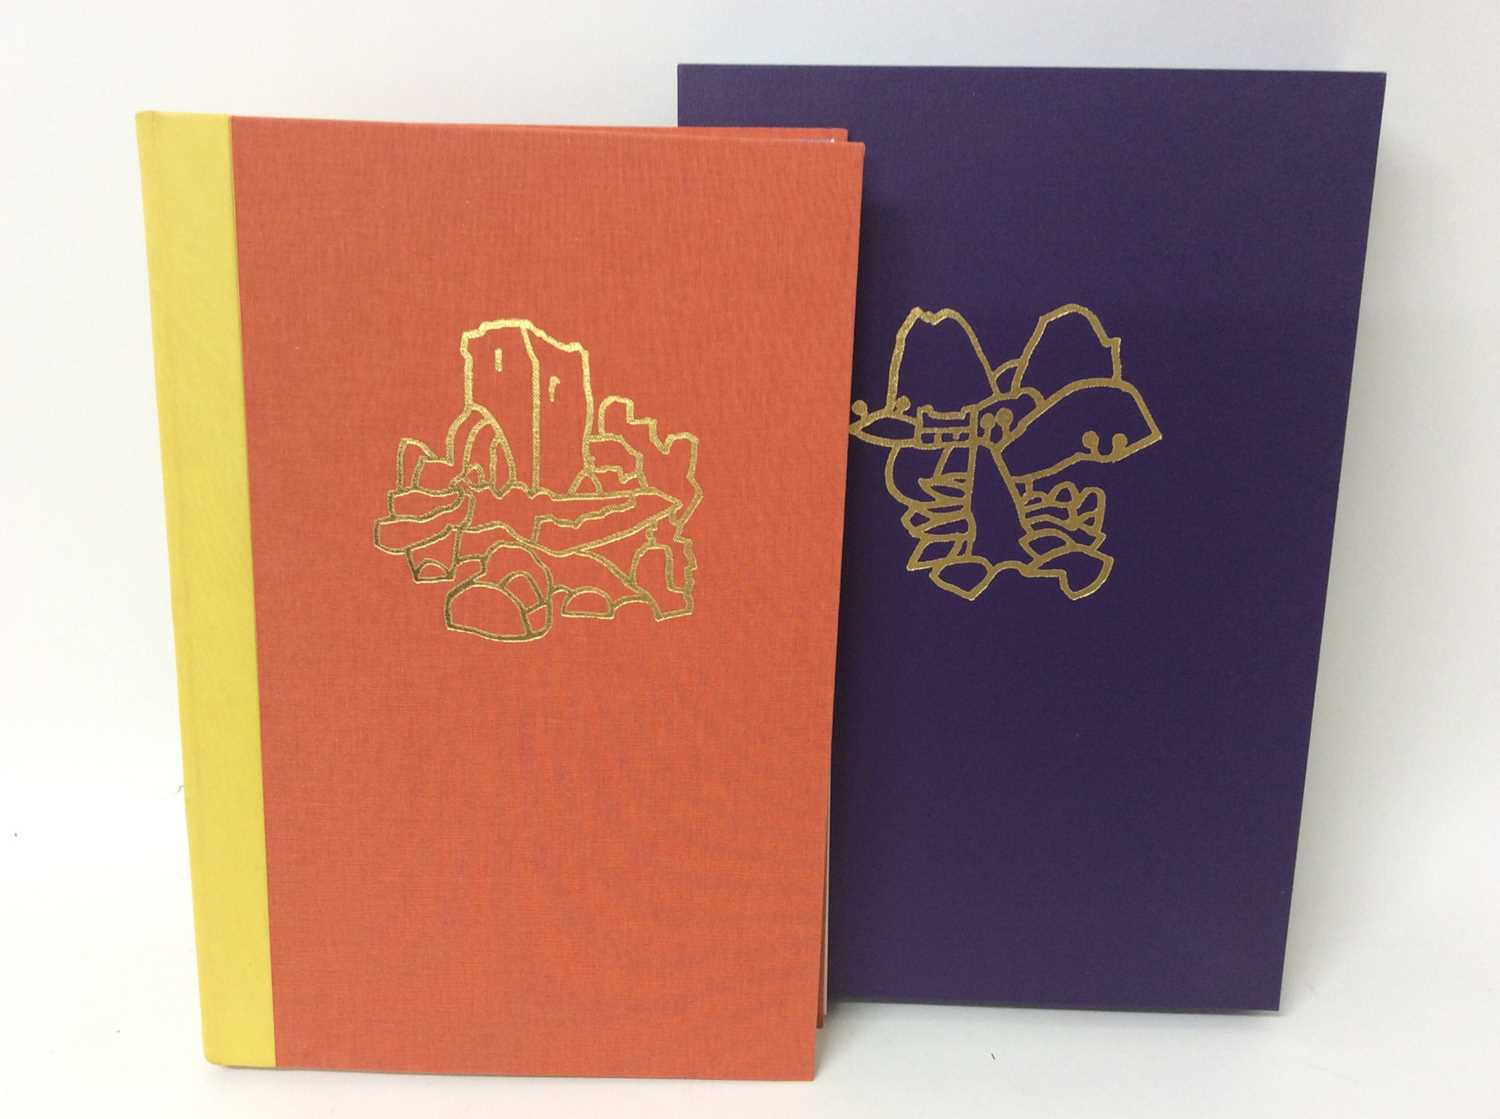 Pennant and His Welsh Landscape with woodcuts by Rigby Graham by Gregynog Press 2006, limited editio